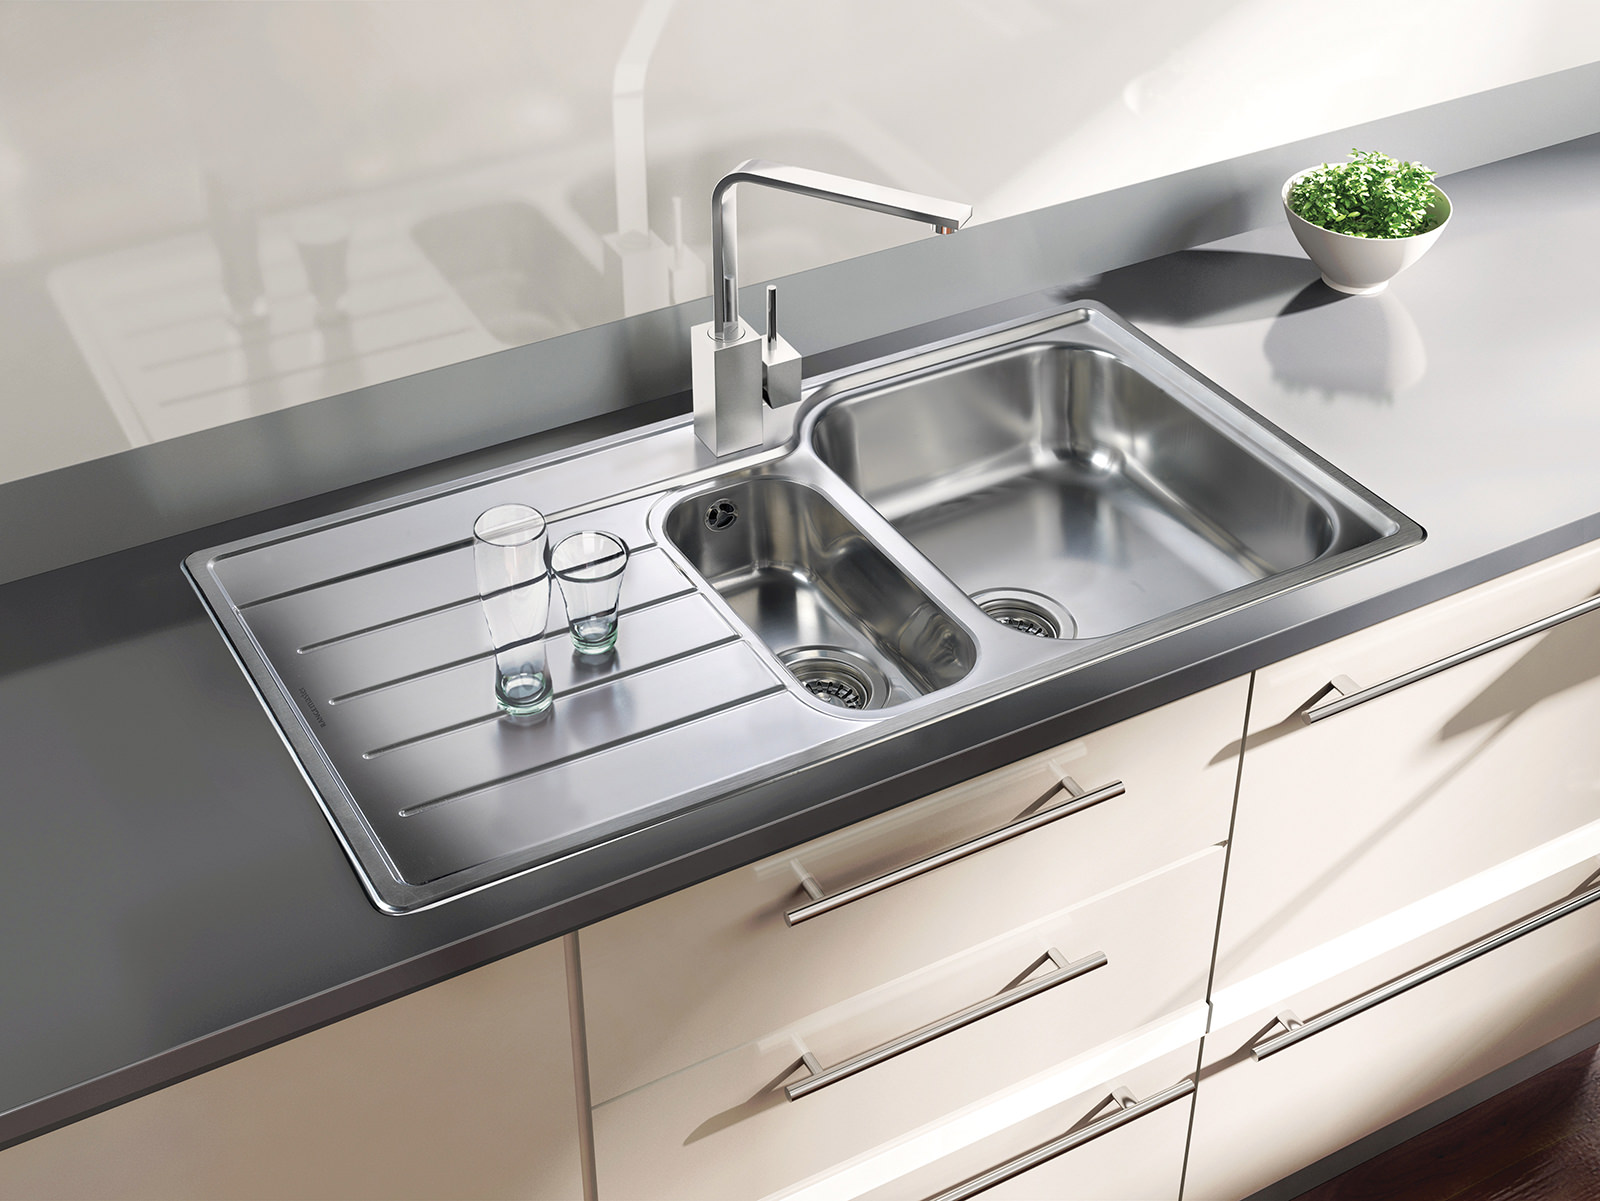 rangemaster kitchen sinks rangemaster oakland 985 x 508mm stainless steel 1 5b inset 1721